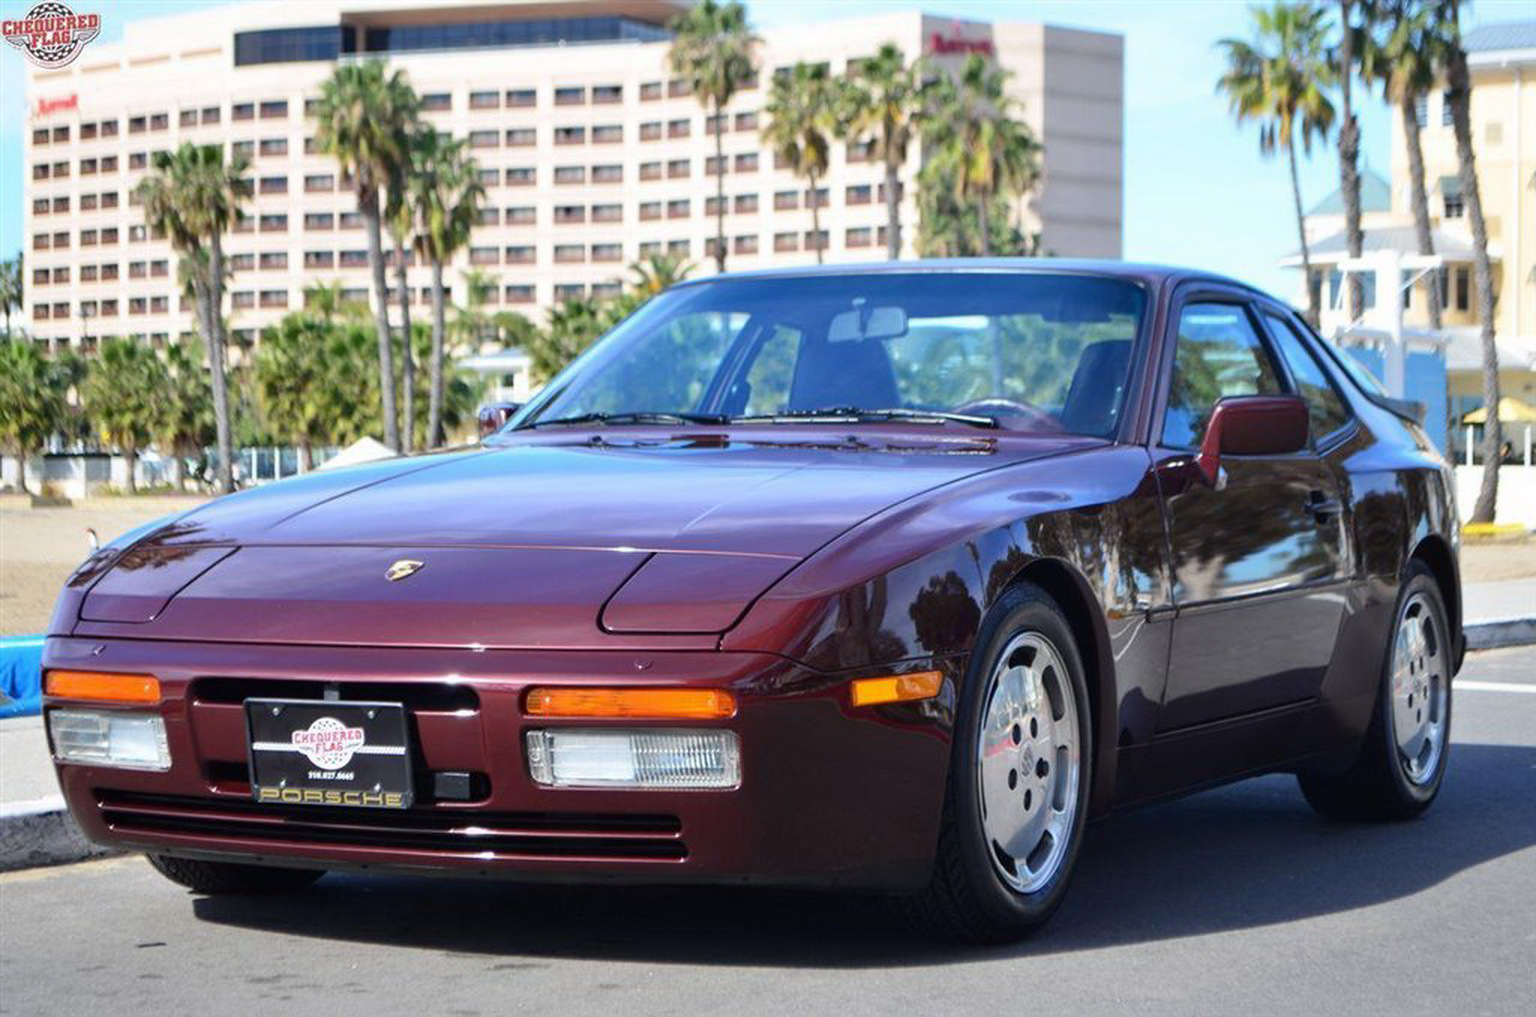 1987 porsche 944 with less than 6k miles is an expensive ride back in time carscoops. Black Bedroom Furniture Sets. Home Design Ideas